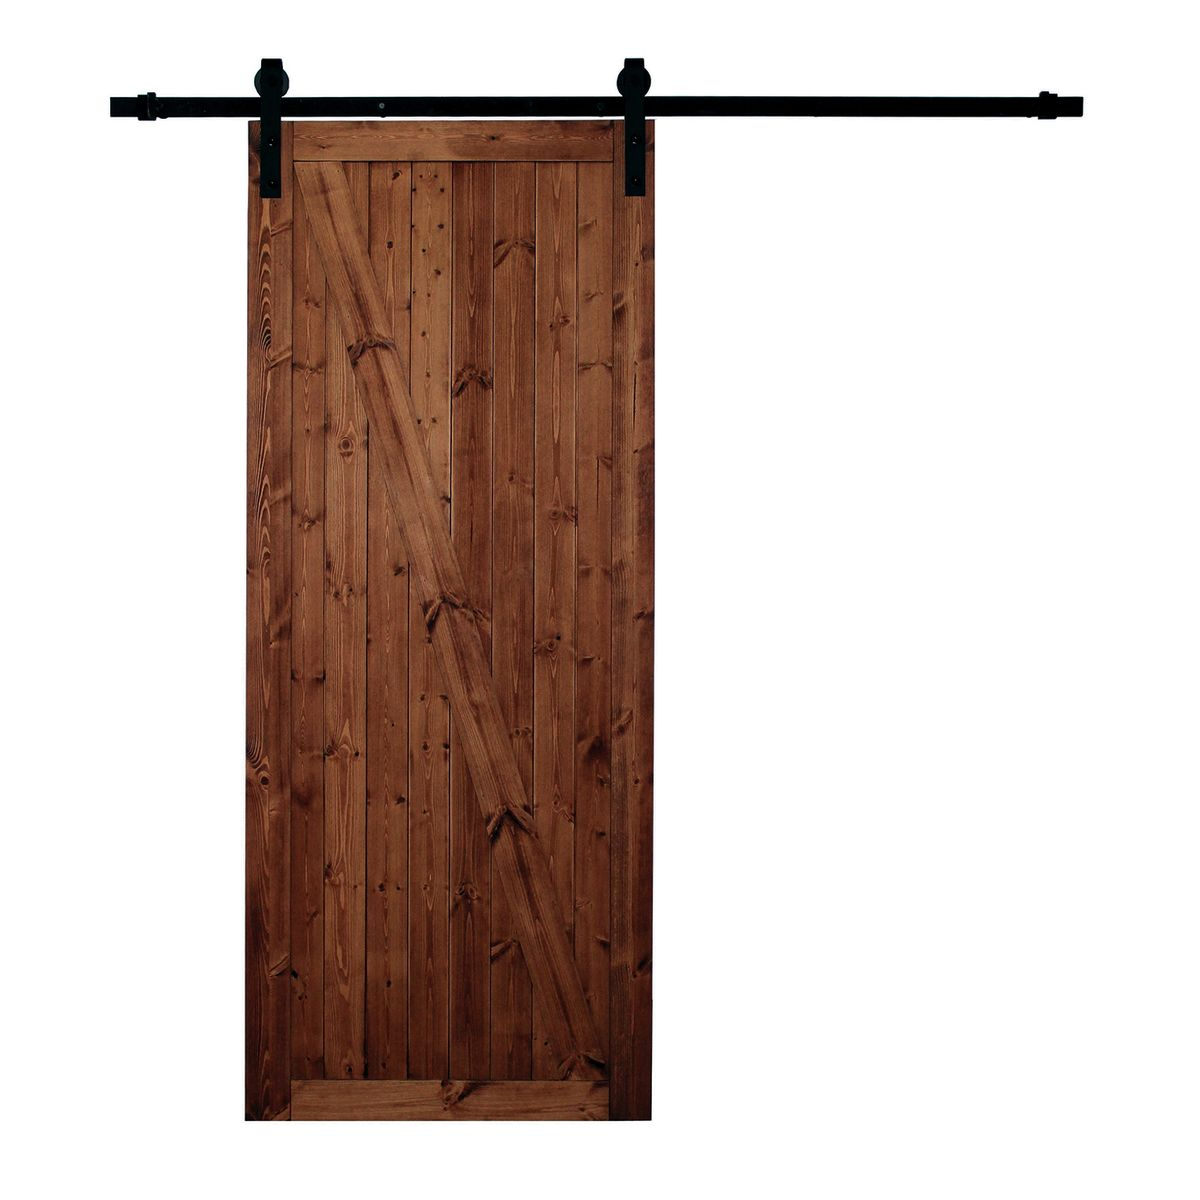 Porte scorrevoli in legno e vetro zp12 regardsdefemmes for Porta finestra leroy merlin